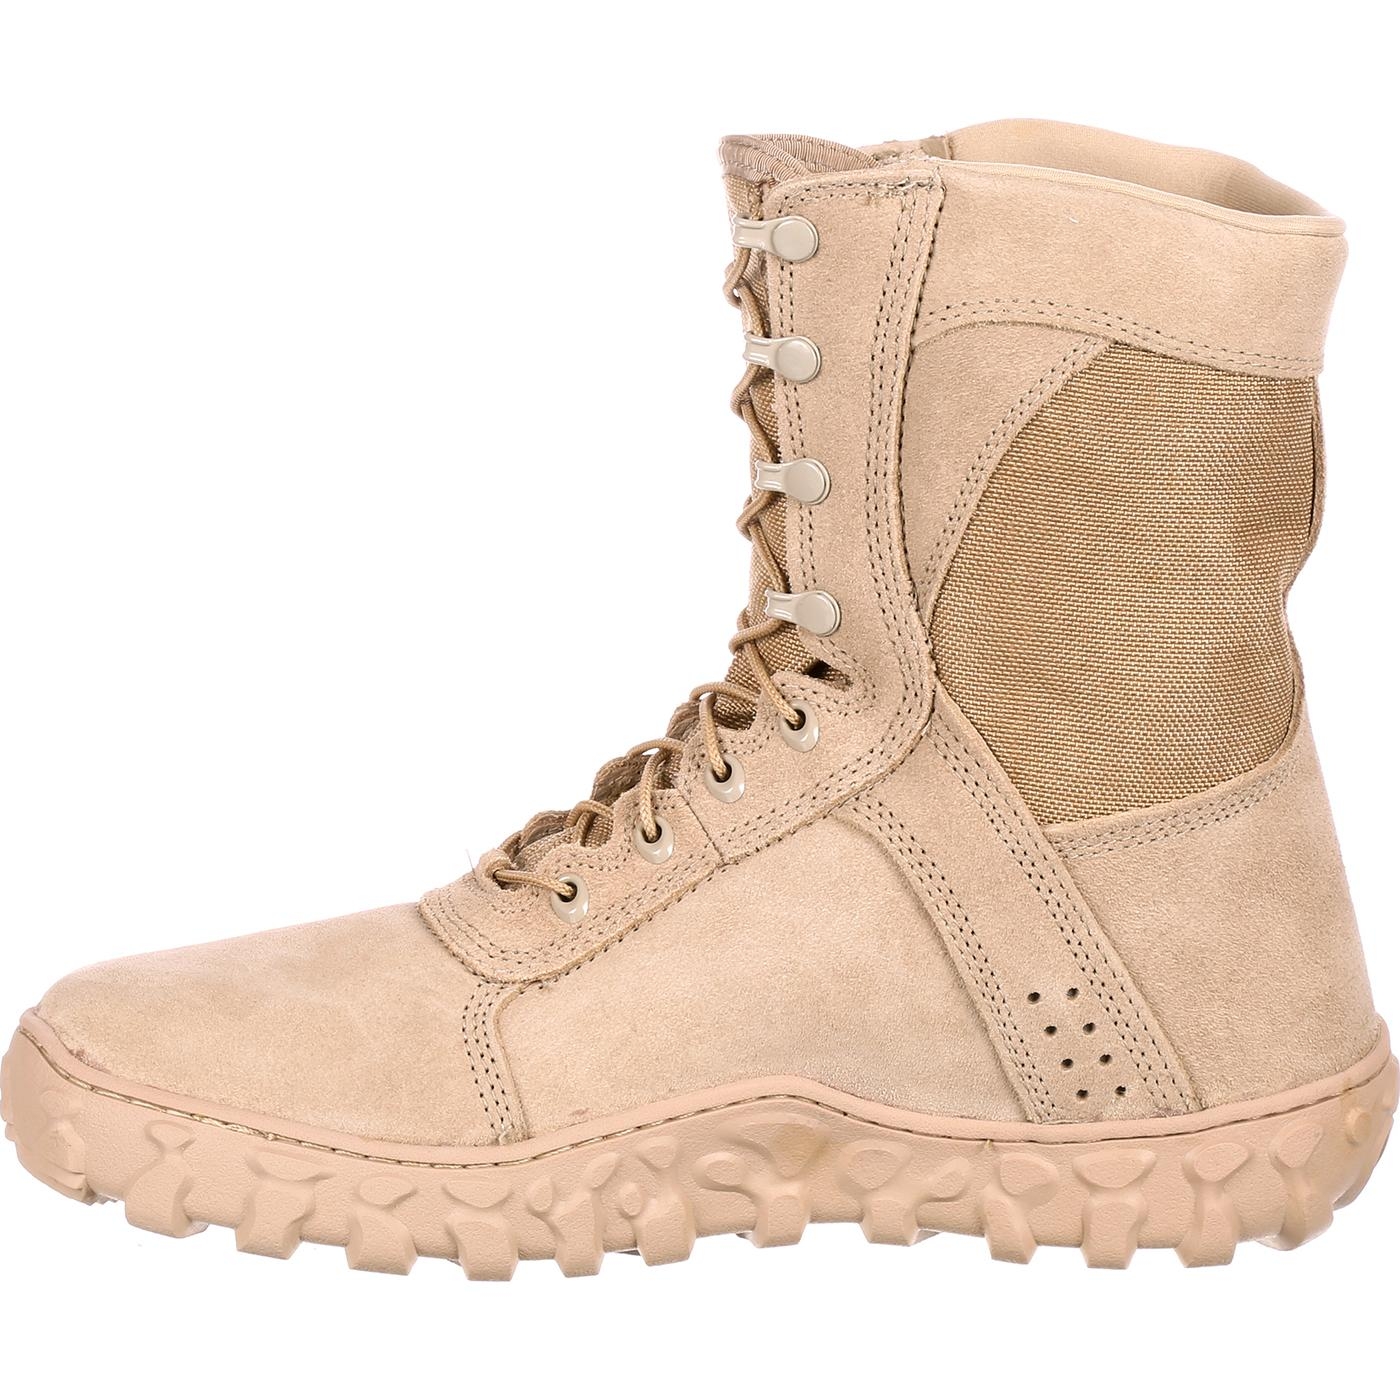 c45d4f2d724 Rocky S2V Tactical Military Boot